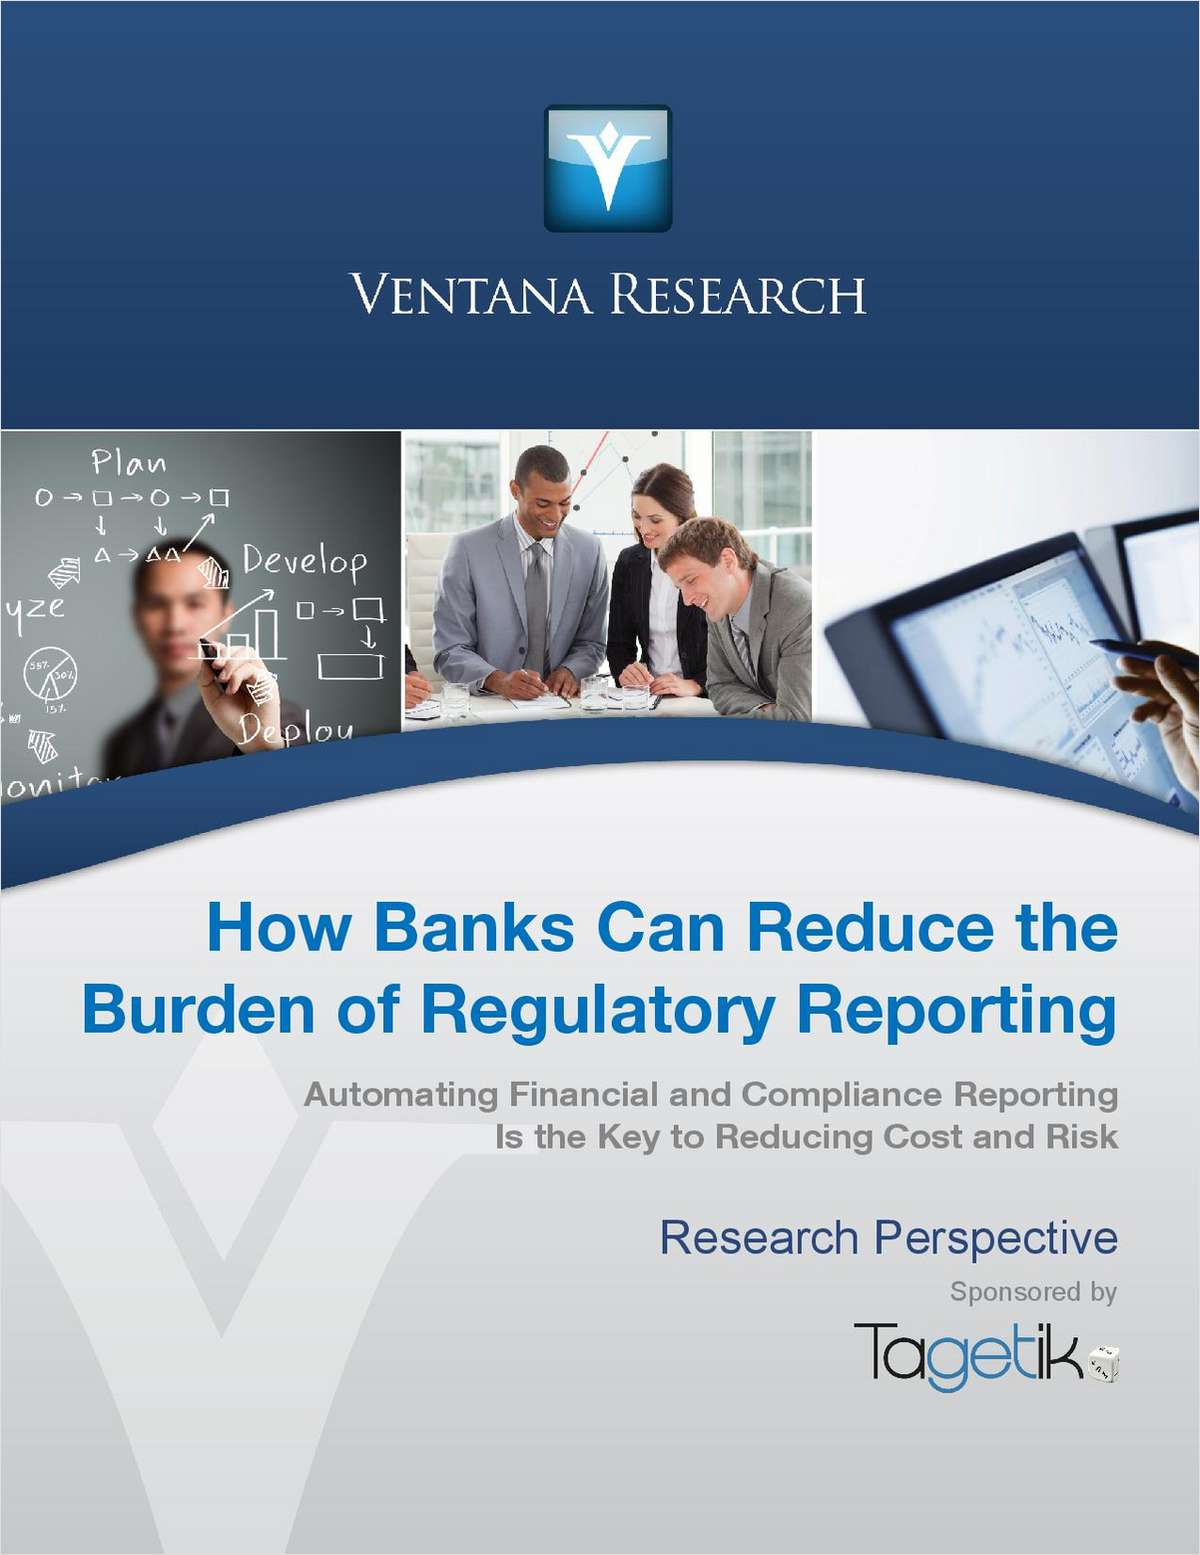 How Banks Can Reduce the Burden of Regulatory Reporting